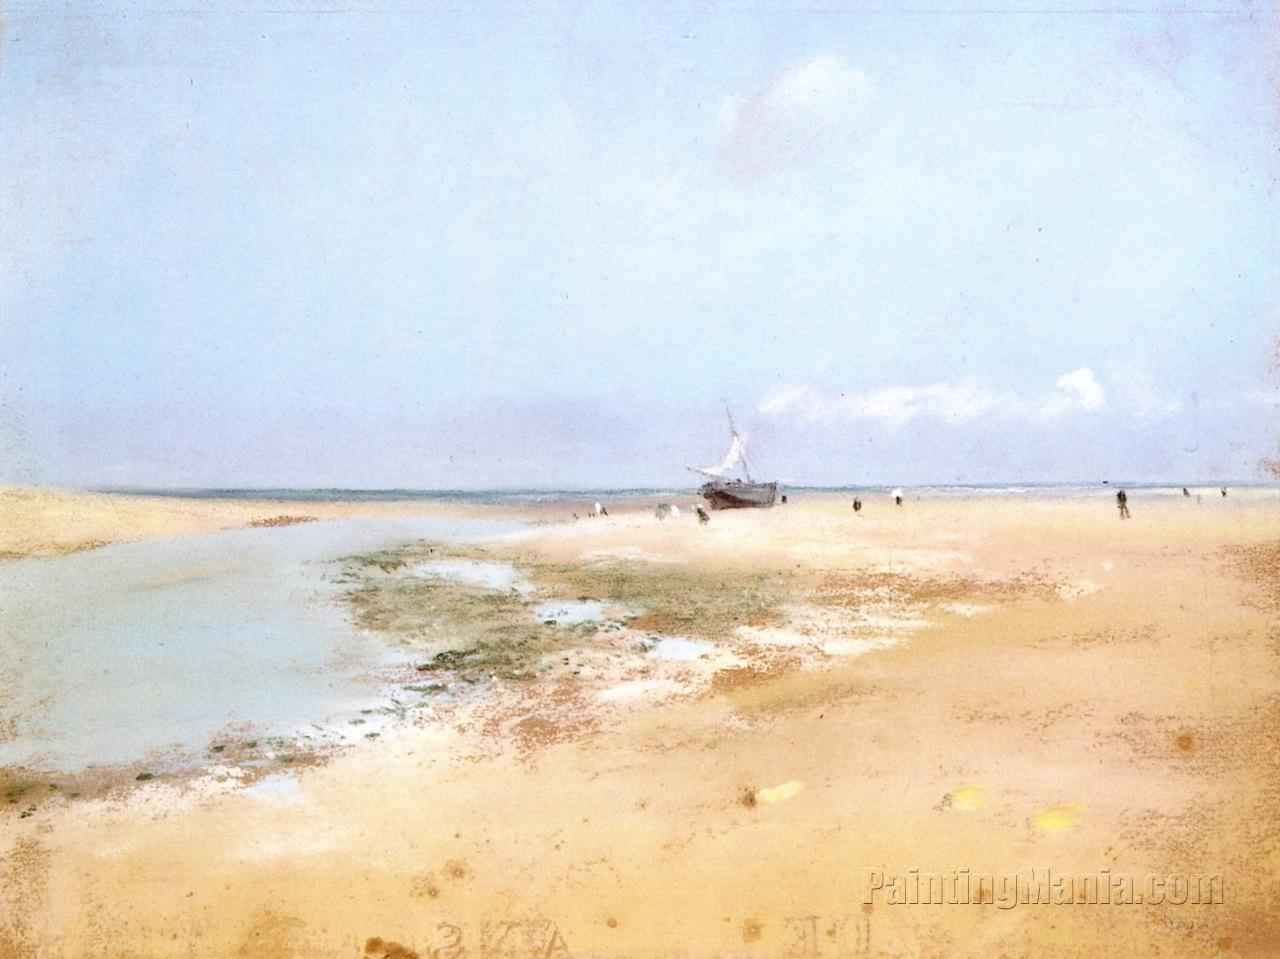 Beach at Low Tide (Mouth of the River)